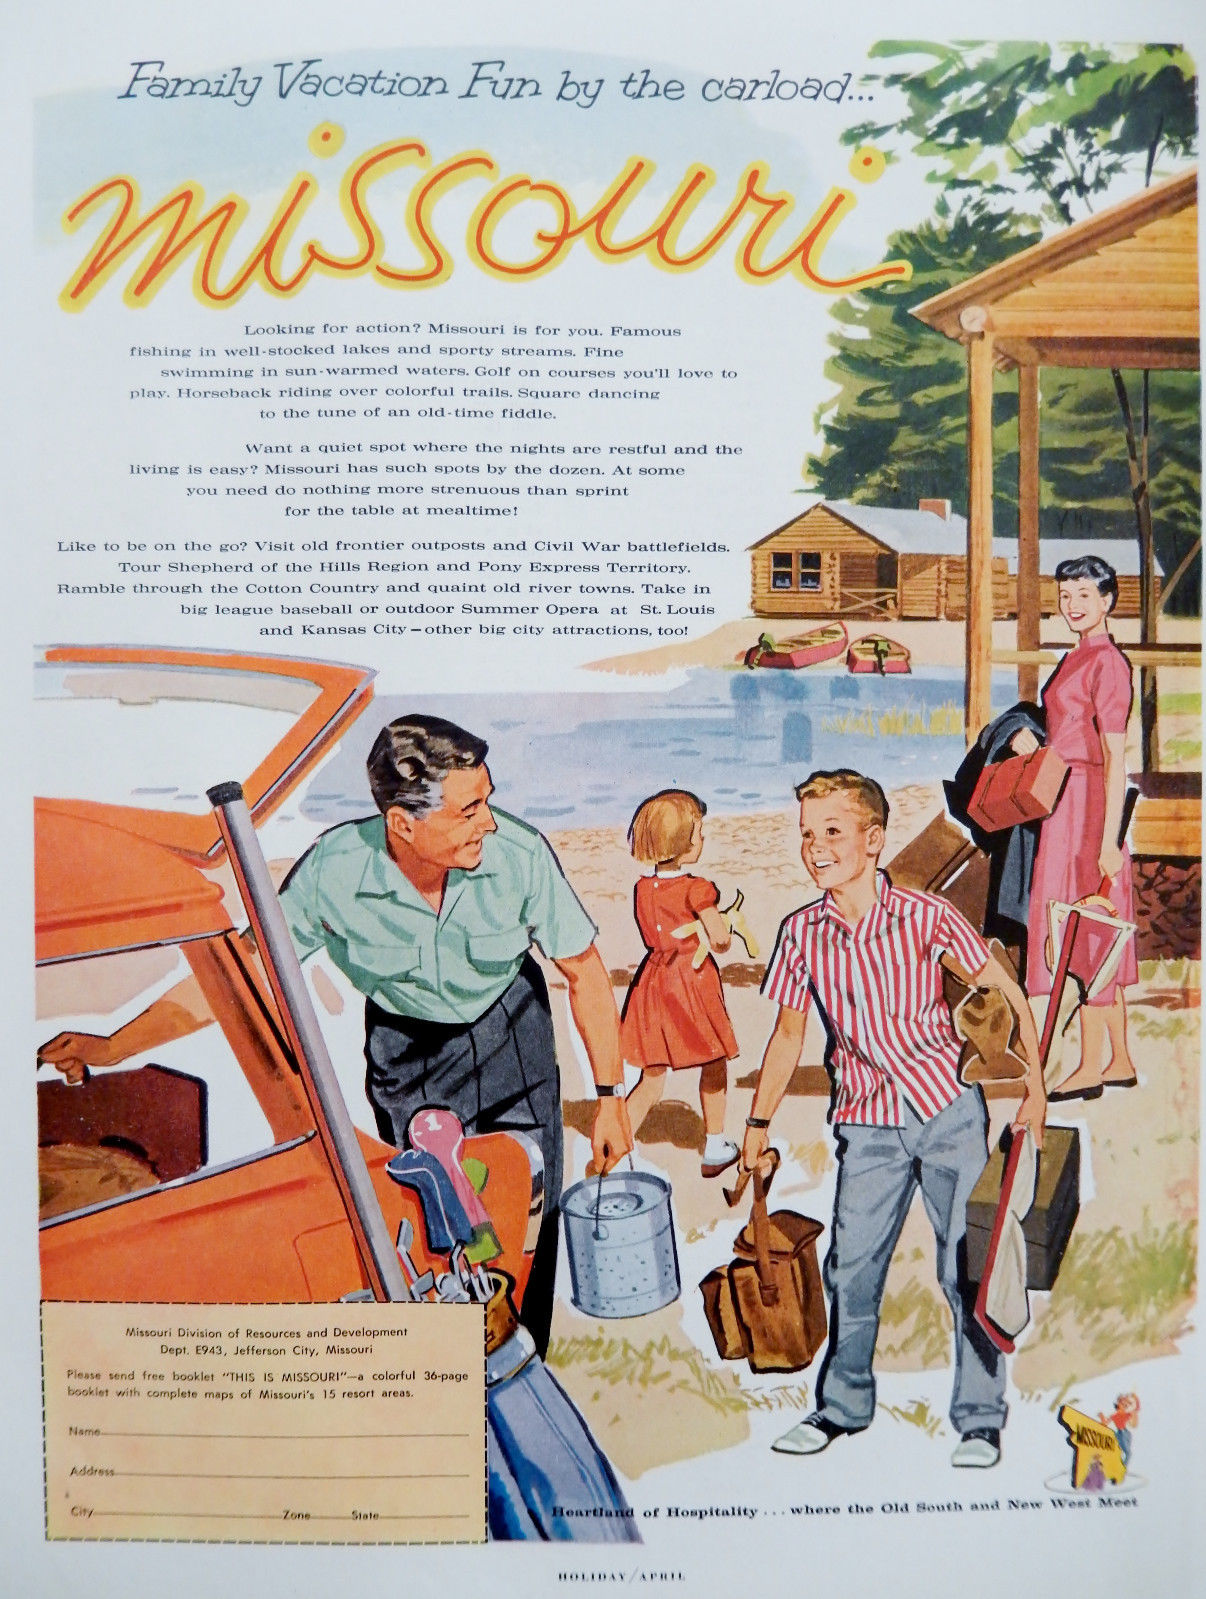 1959 Missouri Tourism advert